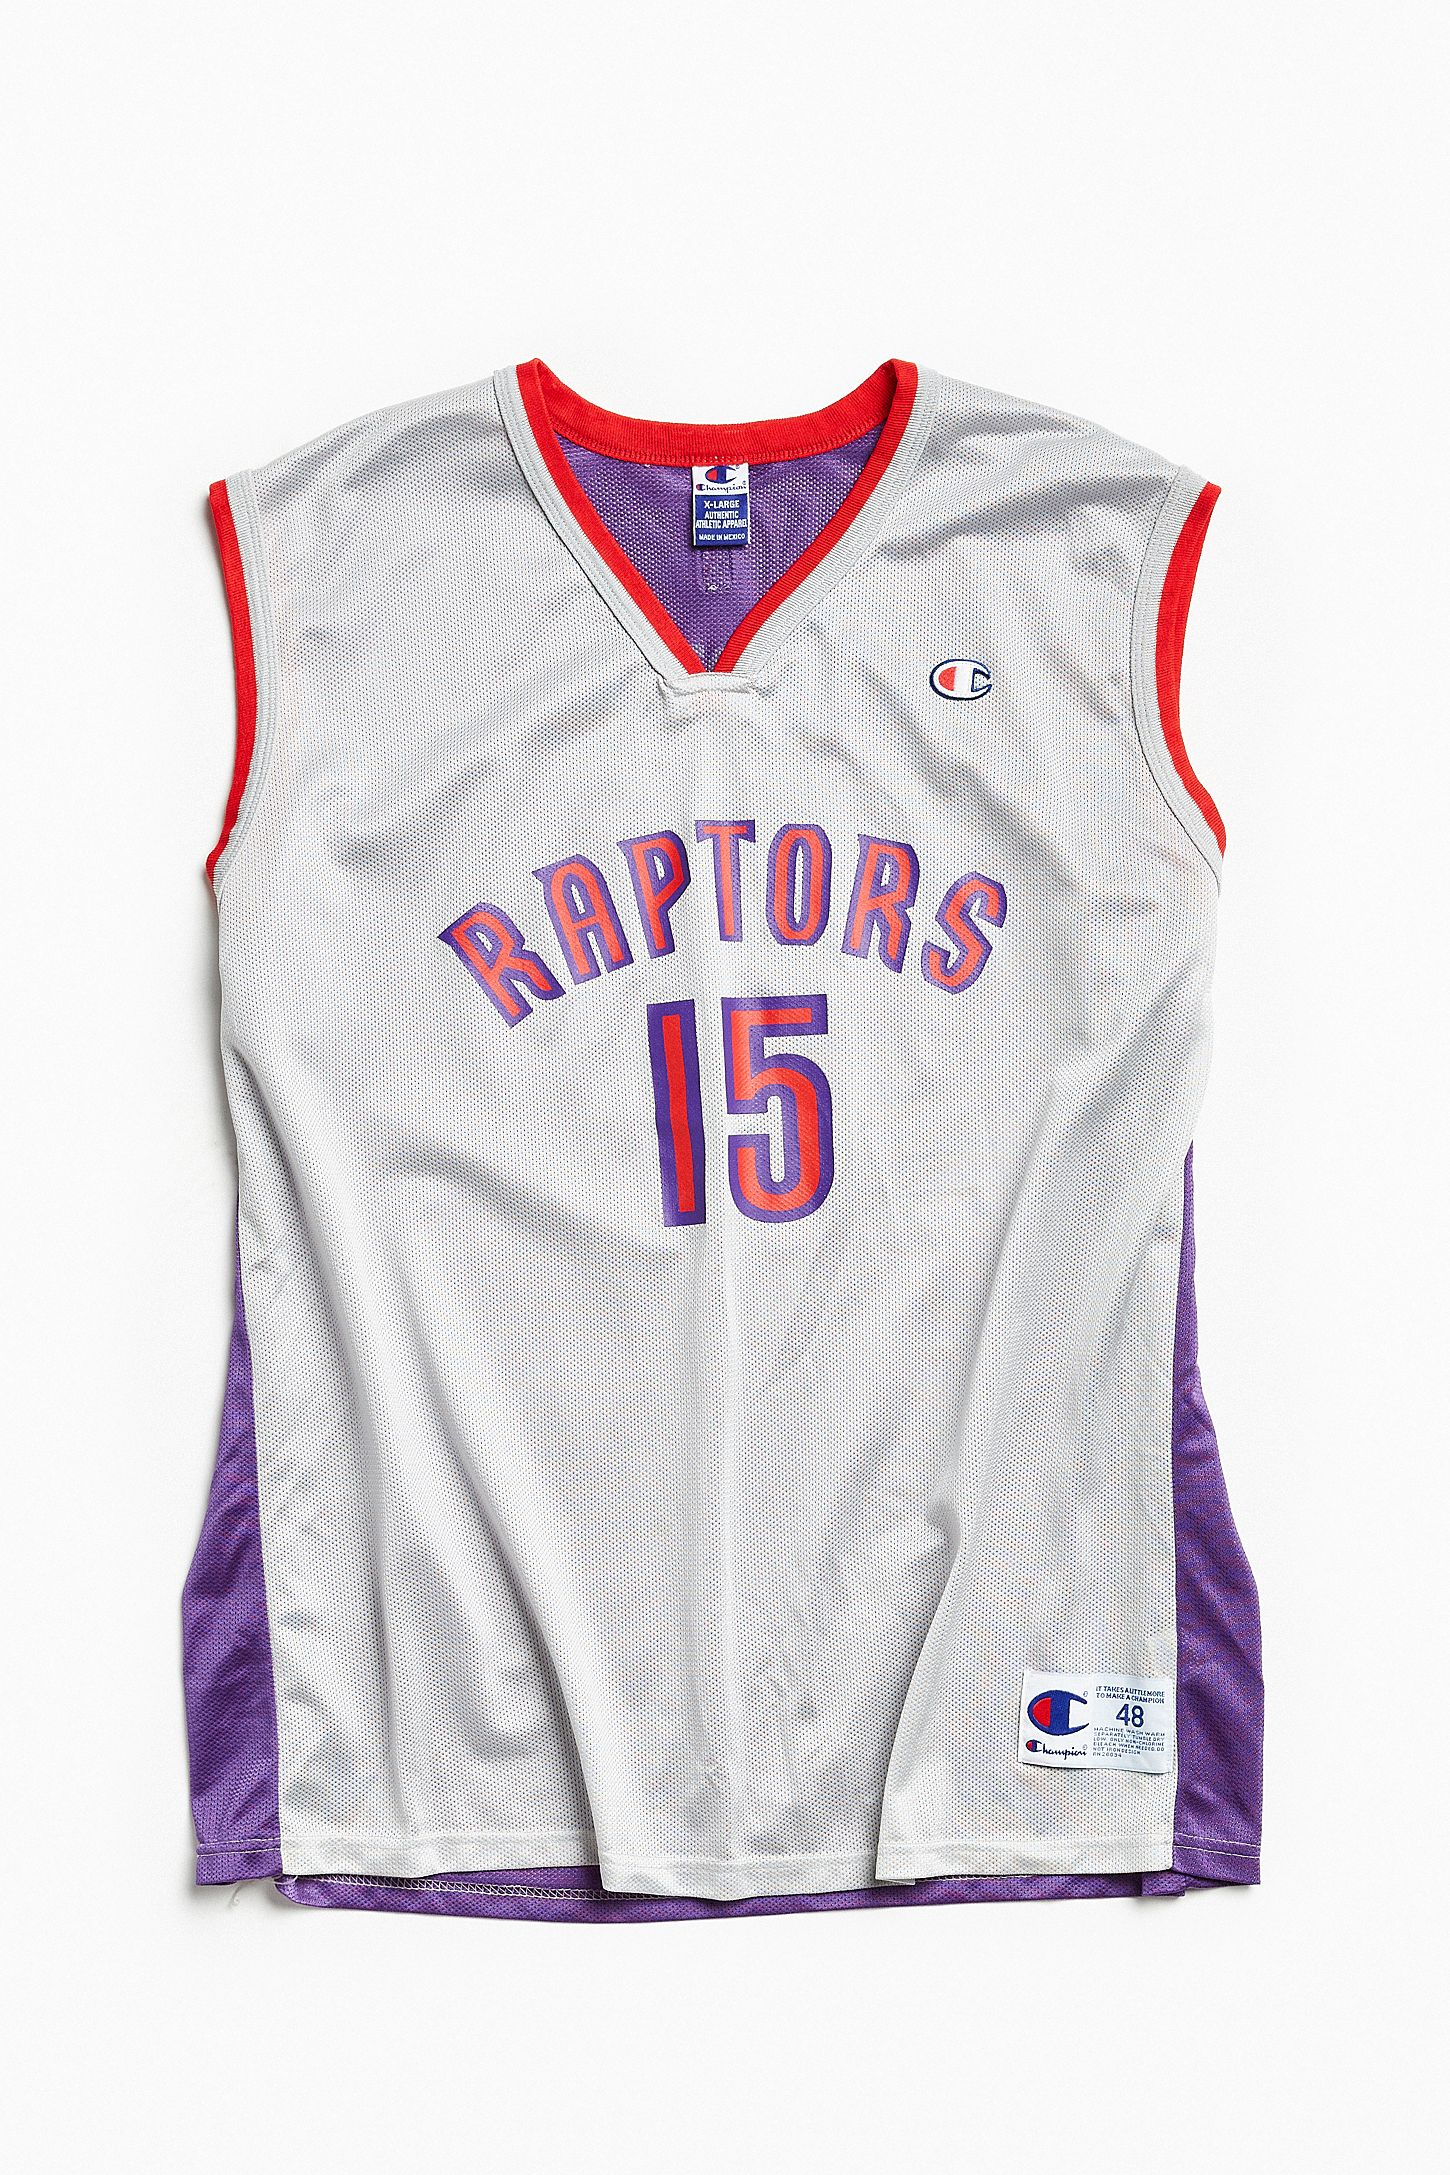 1fb39dcd484 Vintage Champion Vince Carter Toronto Raptors Basketball Jersey. Tap image  to zoom. Hover to zoom. Double Tap to Zoom